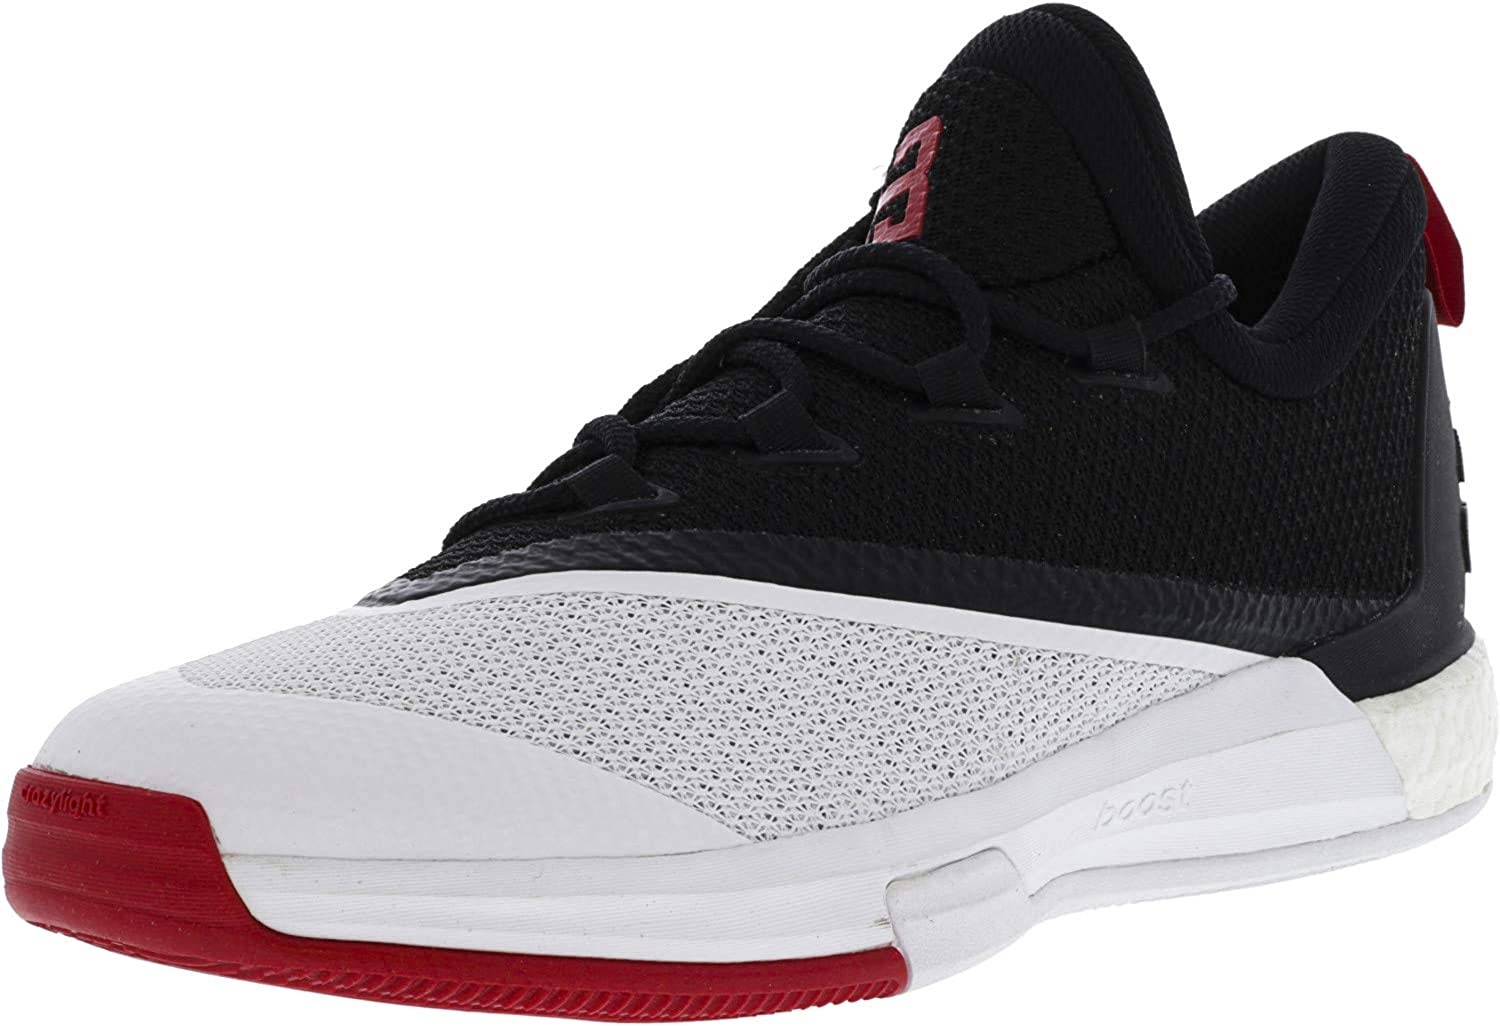 192c97833 Adidas Men's Crazylight Crazylight Crazylight Boost 2.5 Core Black Scarlet  Footwear White Ankle-High Basketball shoes - 10.5M e9238d